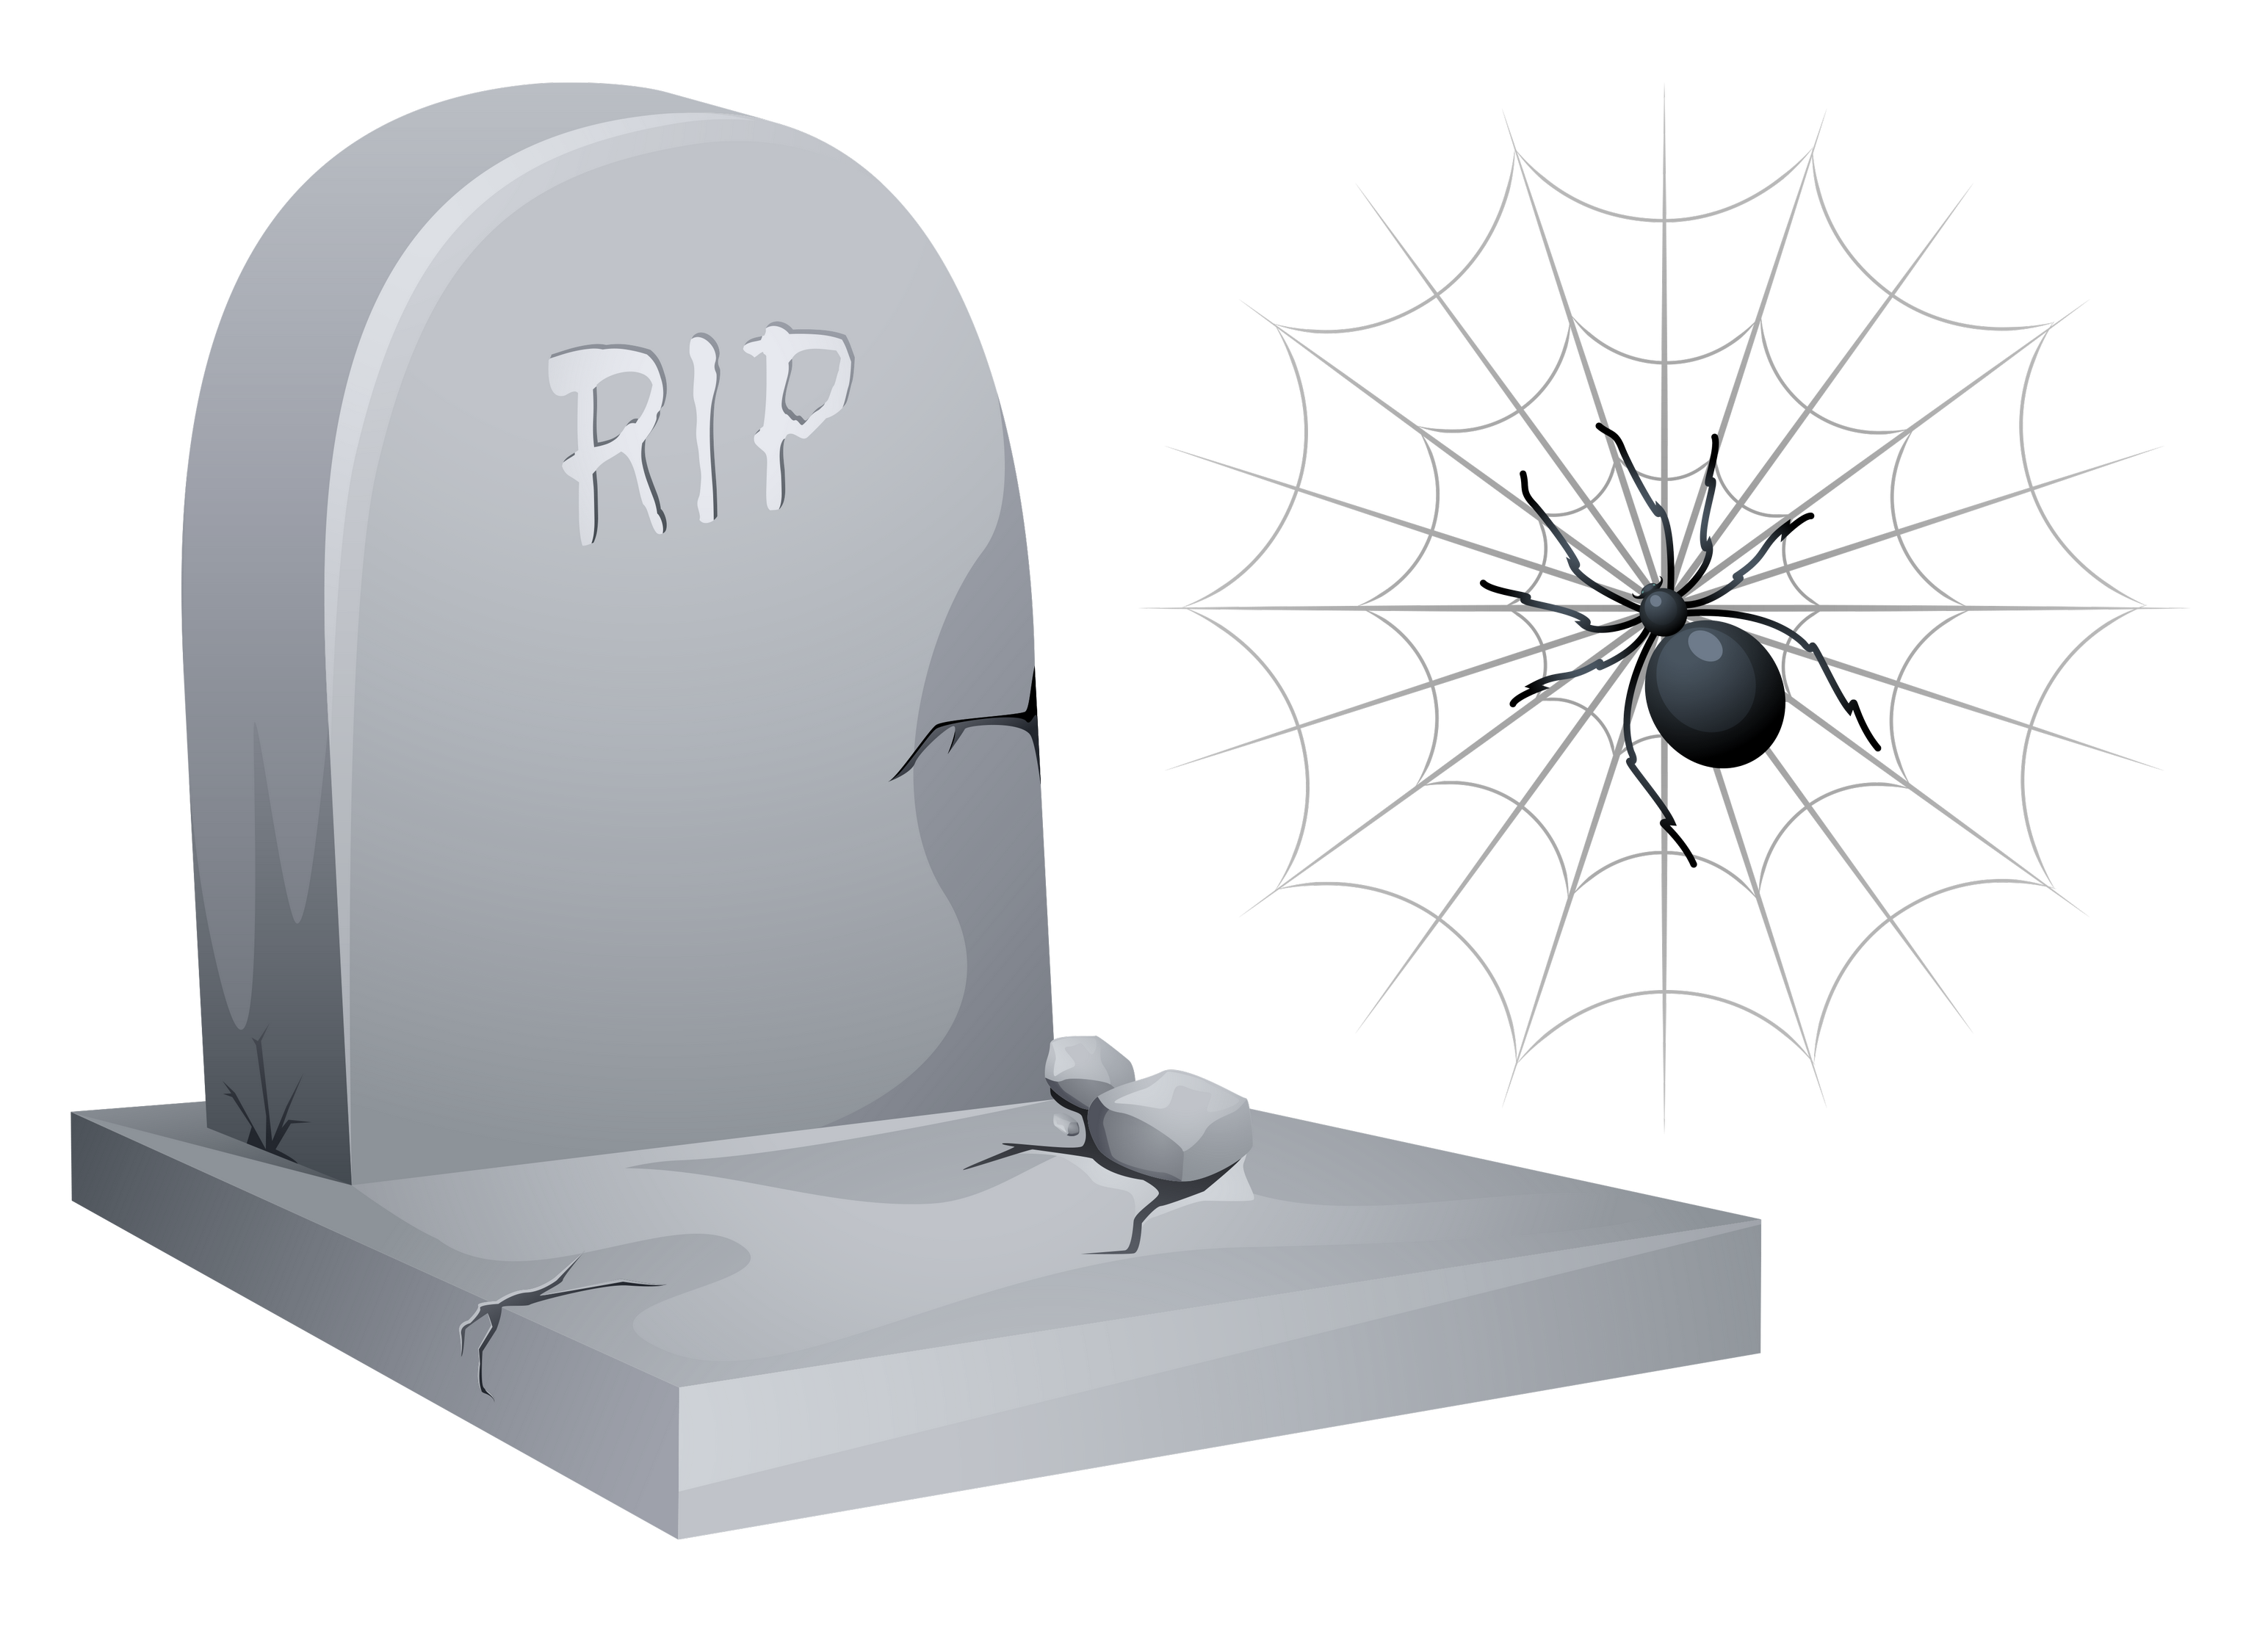 Halloween tombstone png. Rip with spider and